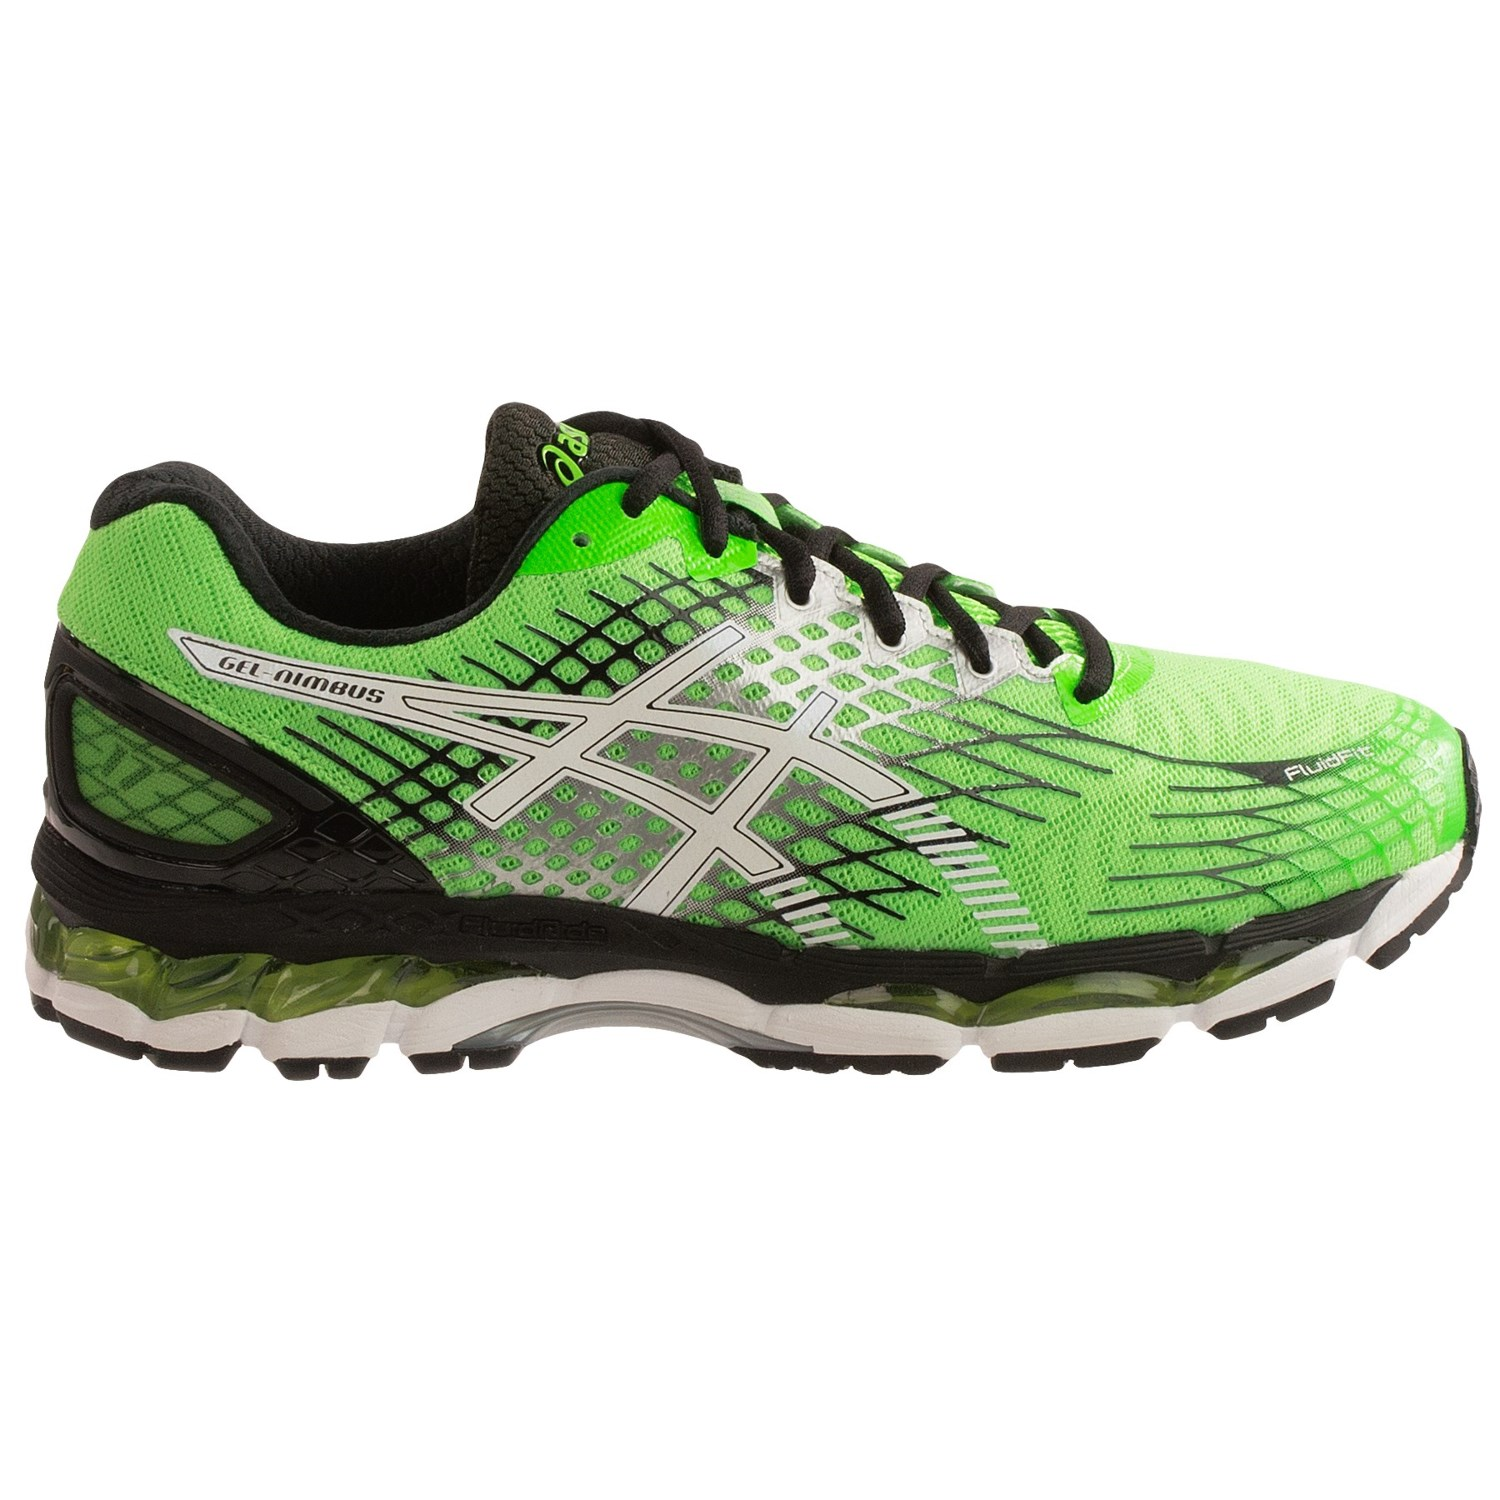 asics gel nimbus 17 running shoes for men save 20. Black Bedroom Furniture Sets. Home Design Ideas